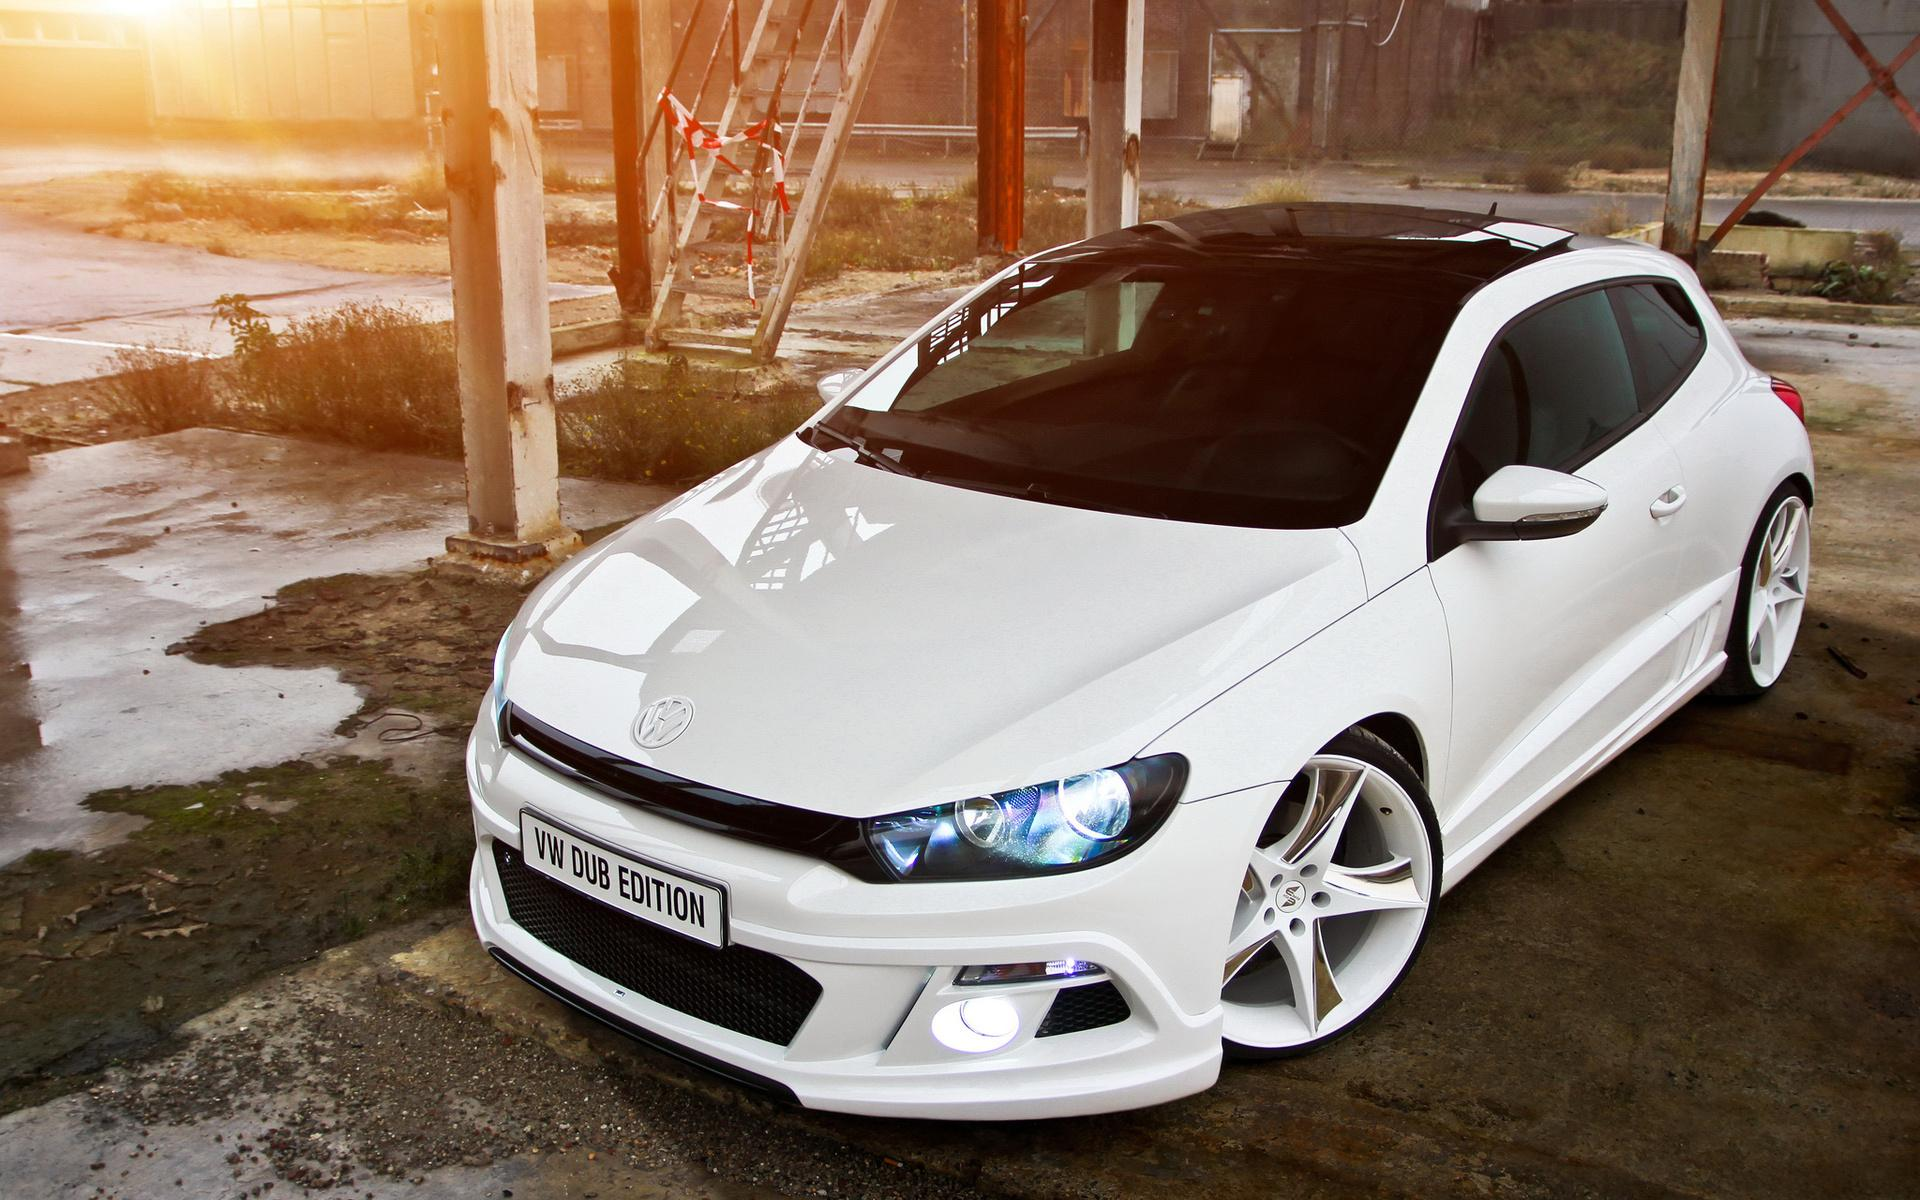 Large Size Wallpapers Of Cars Volkswagen Scirocco Dub Edition Cars